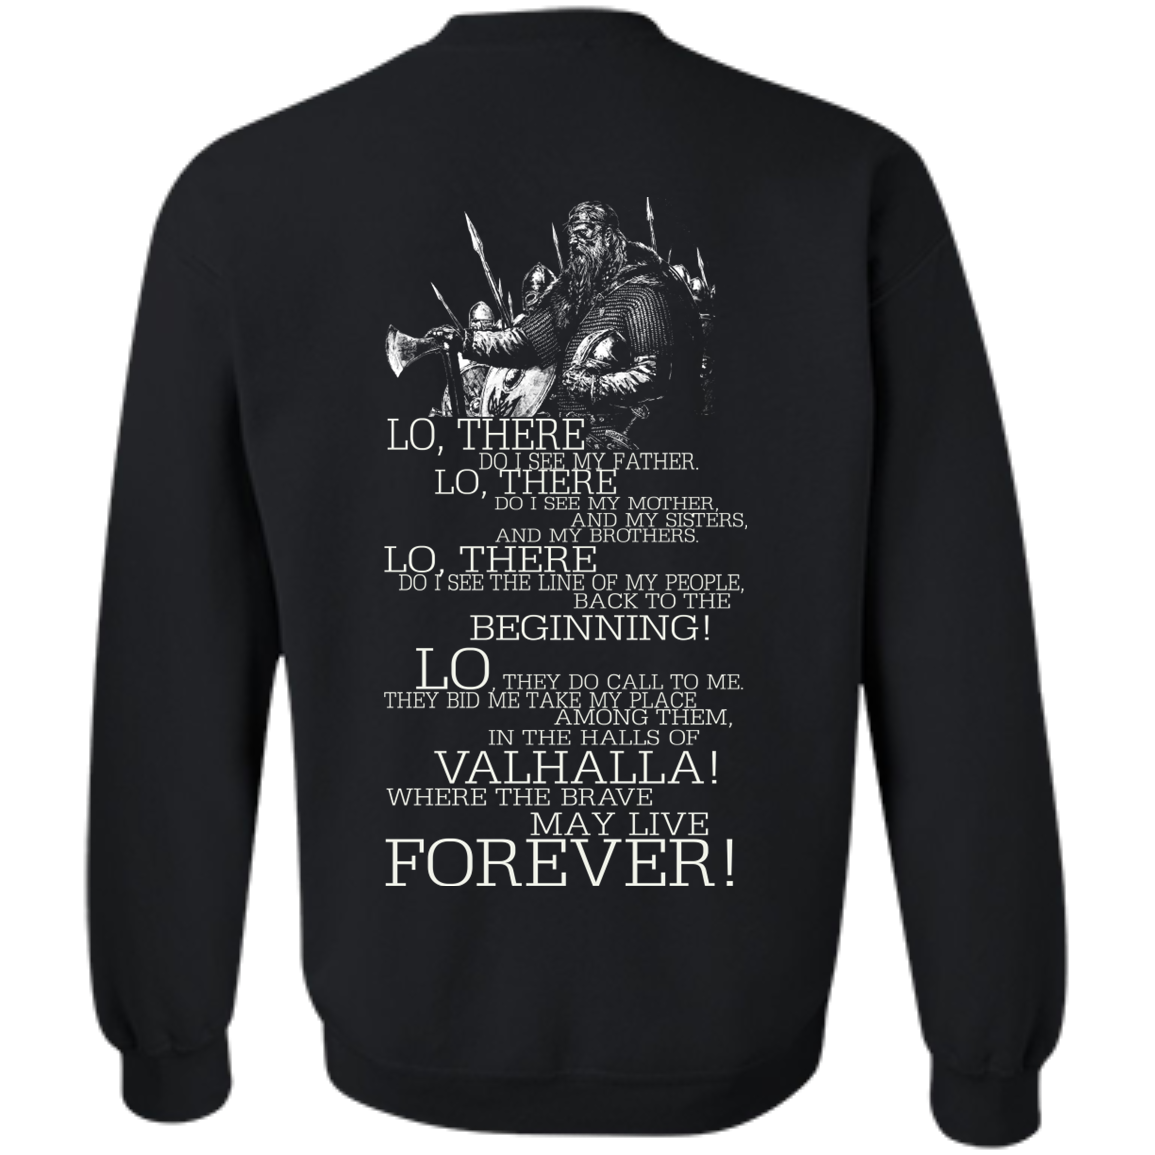 Valhalla Where The Brave May Live Forever T-Shirt